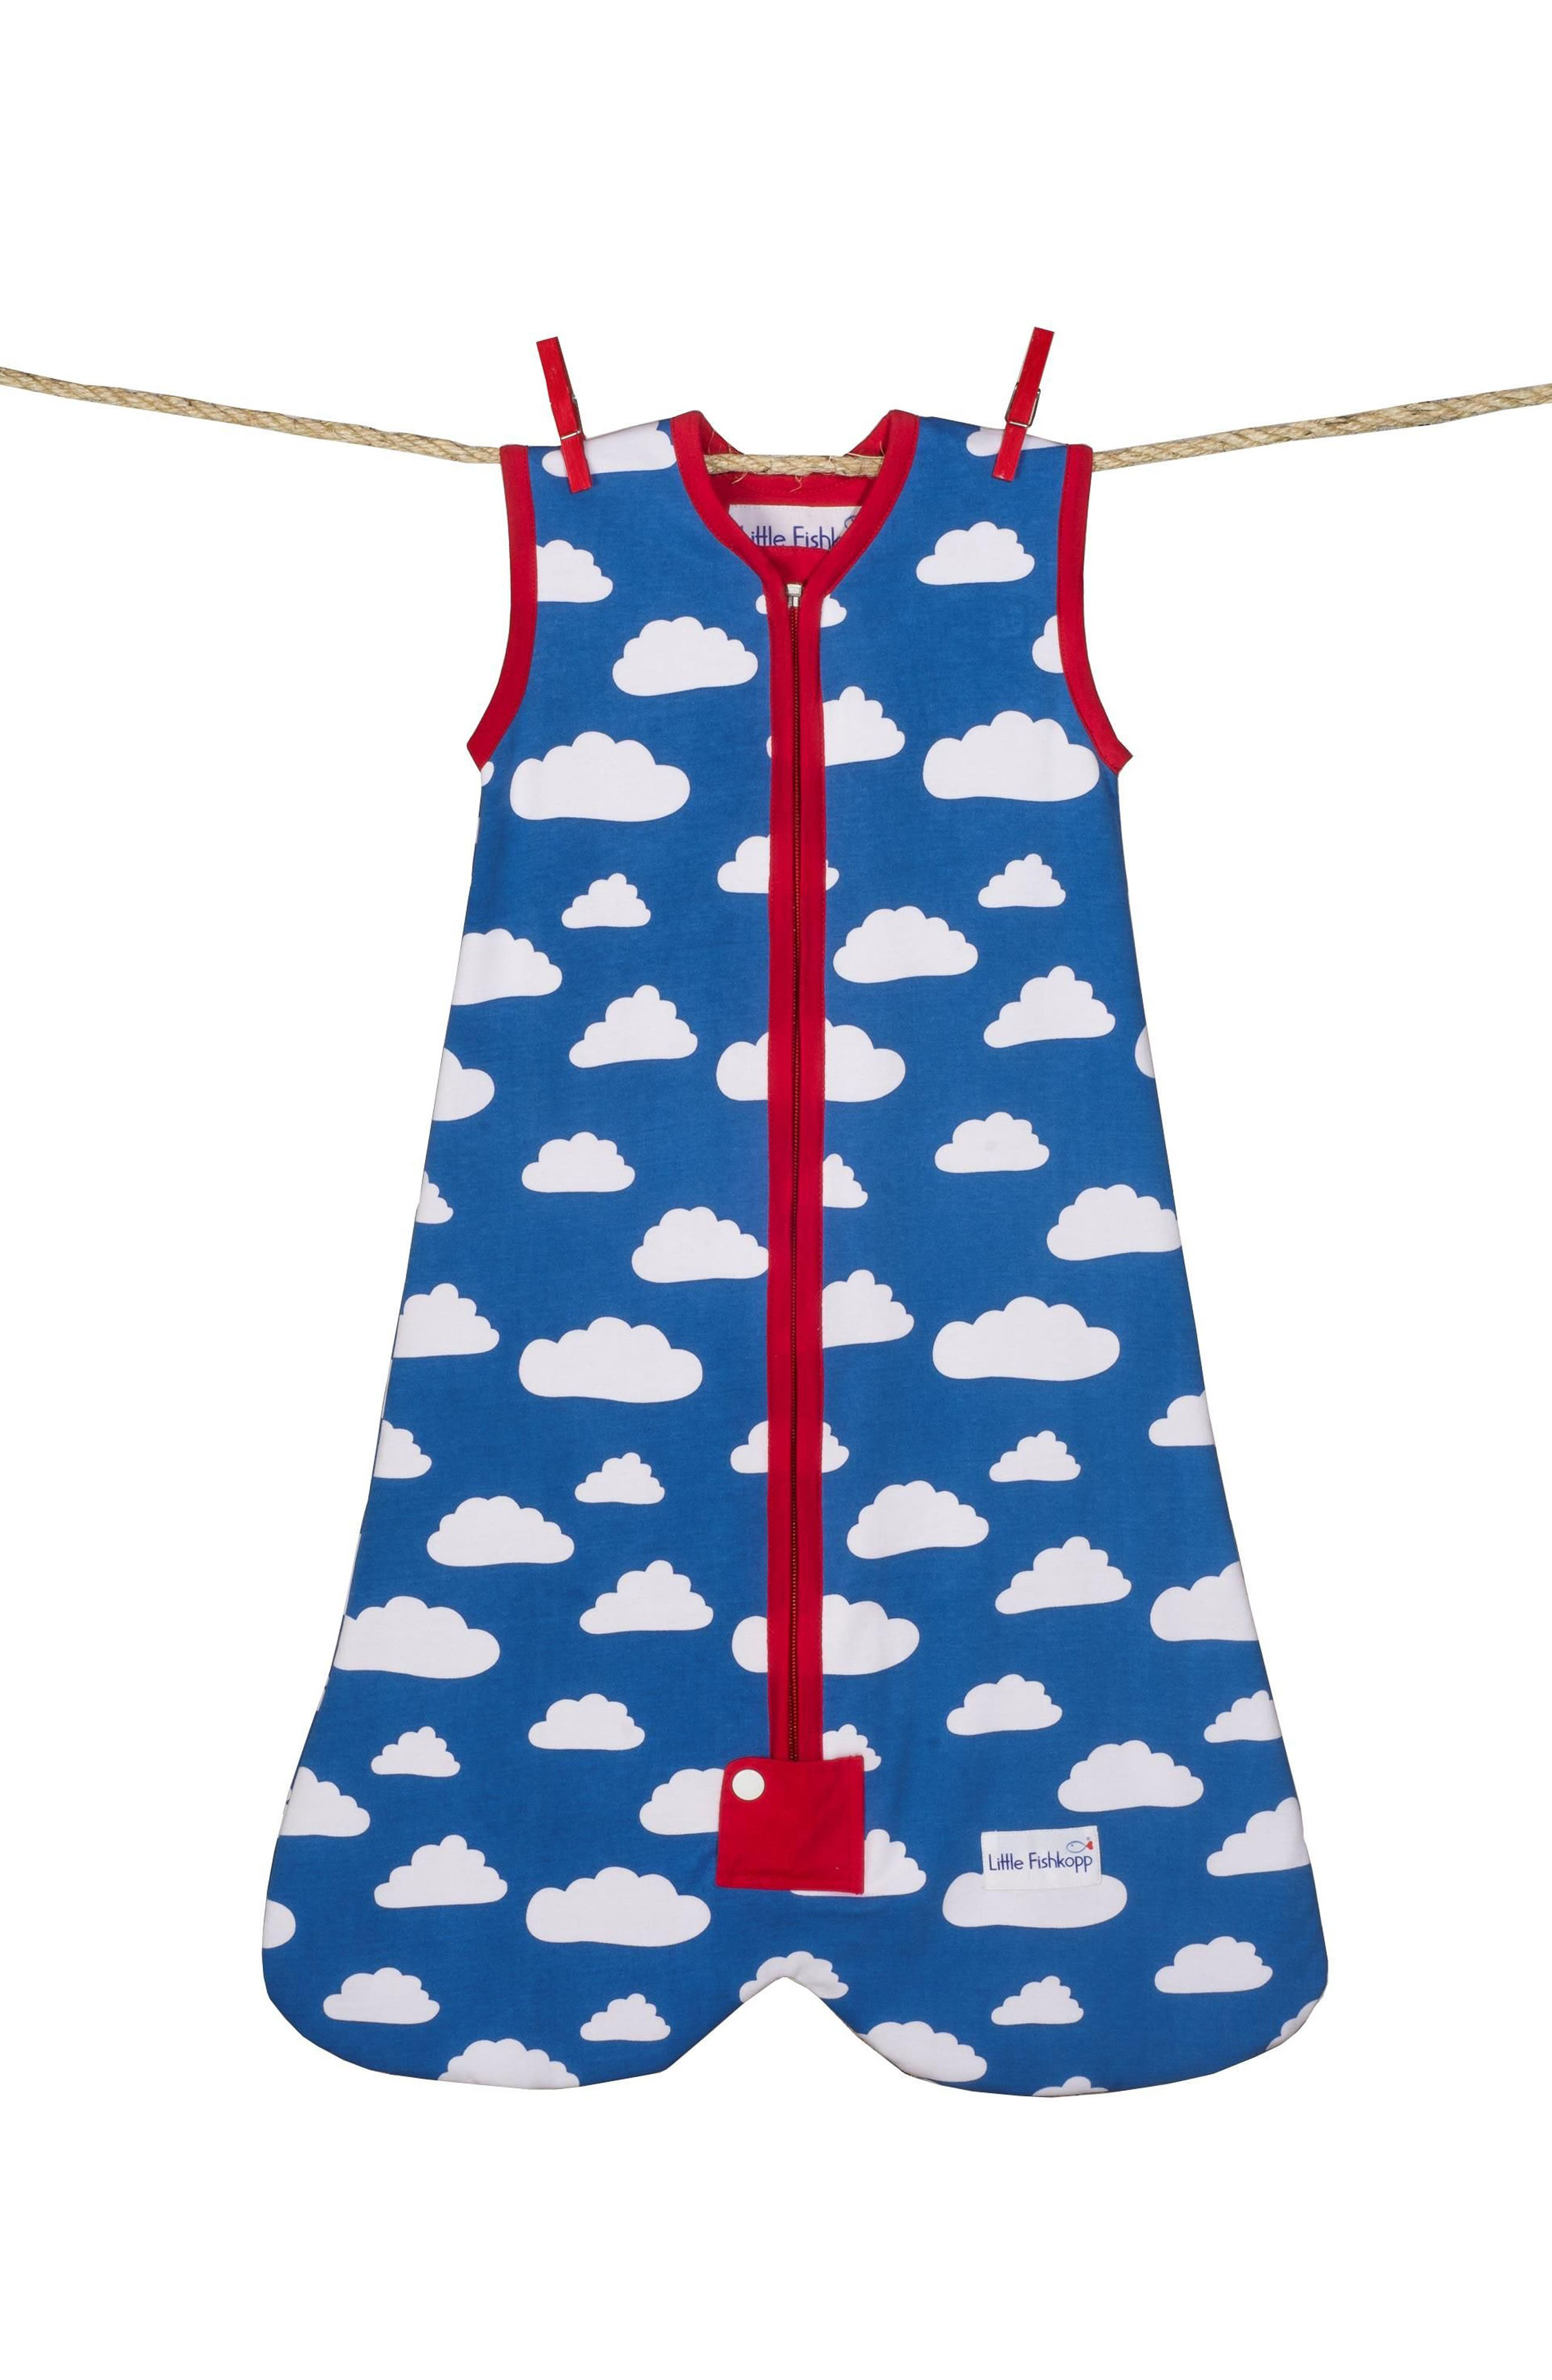 Clouds Organic Cotton Wearable Blanket,                         Main,                         color, 400